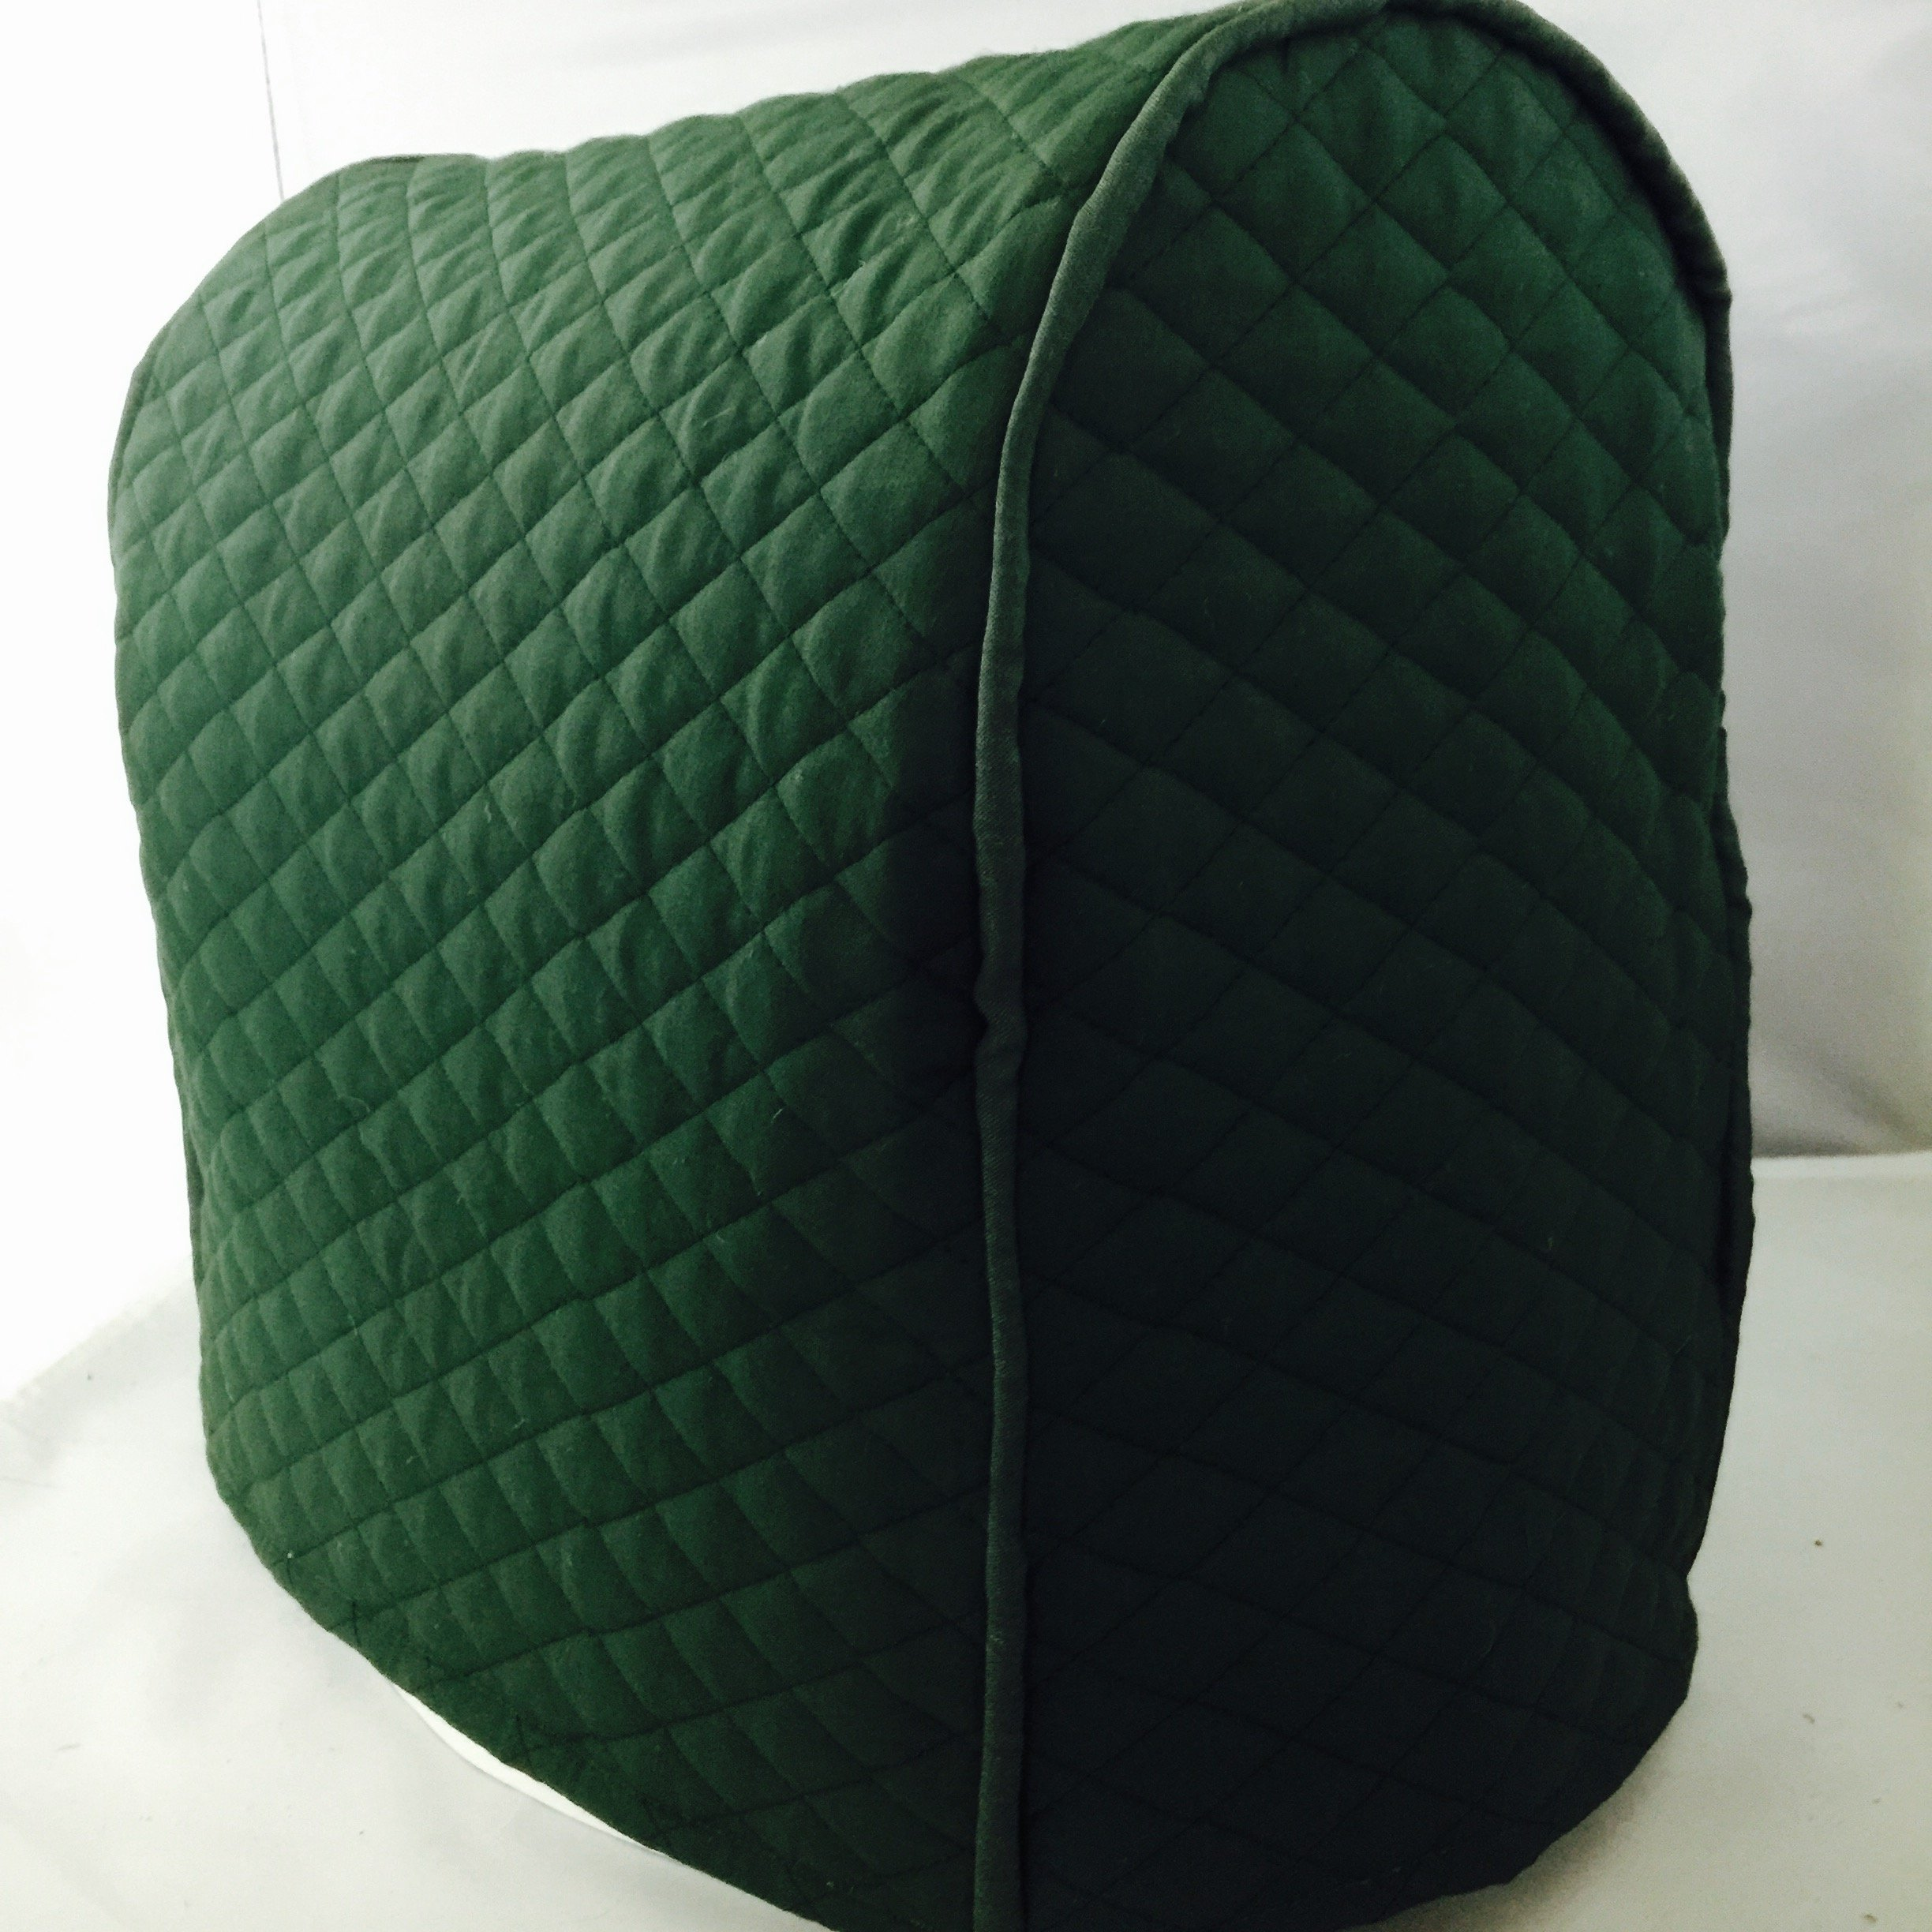 Tilt Head Kitchenaid Stand Mixer Cover / Quilted Double Faced Cotton - Hunter Green